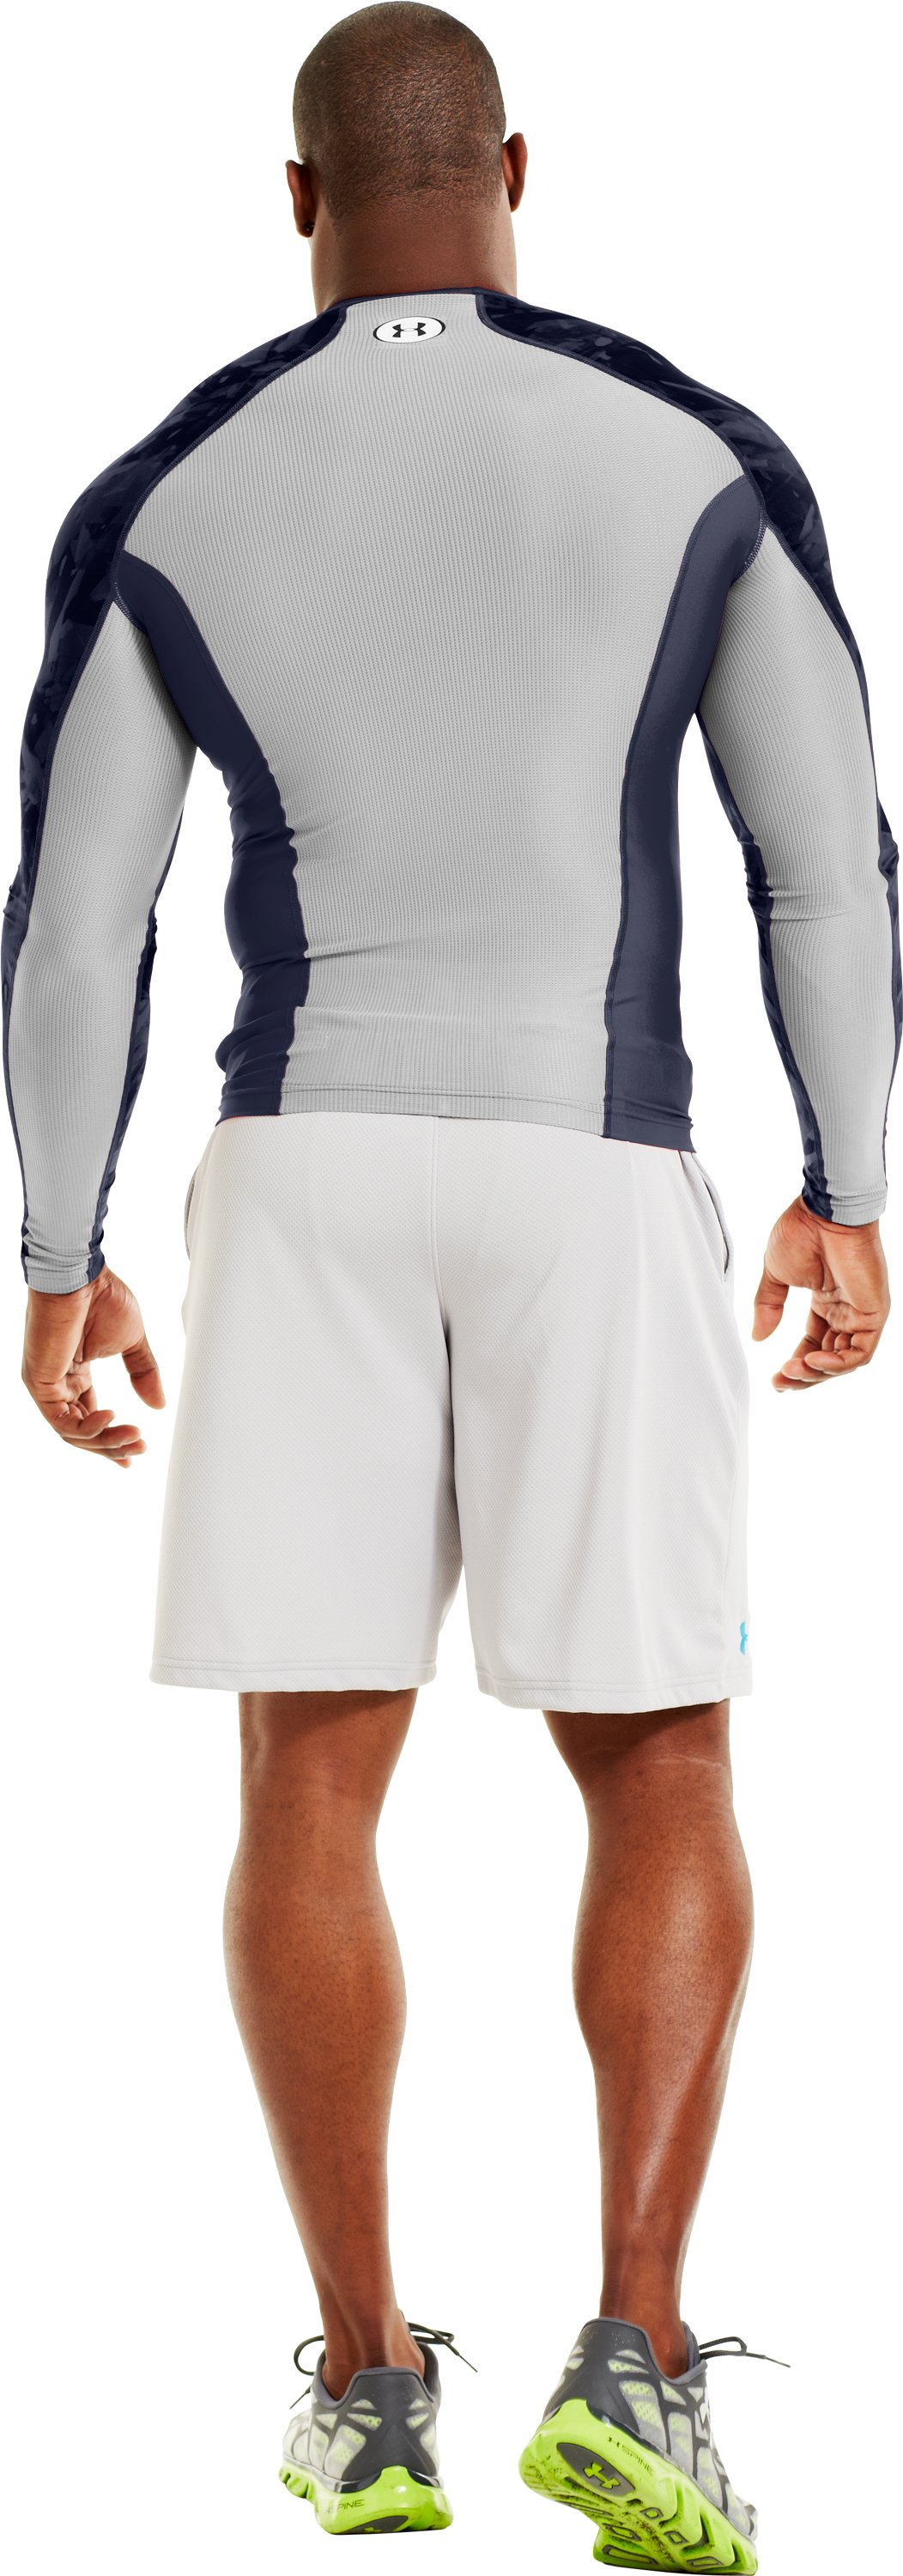 Men's NFL Combine Authentic Compression Long Sleeve, Midnight Navy, Back